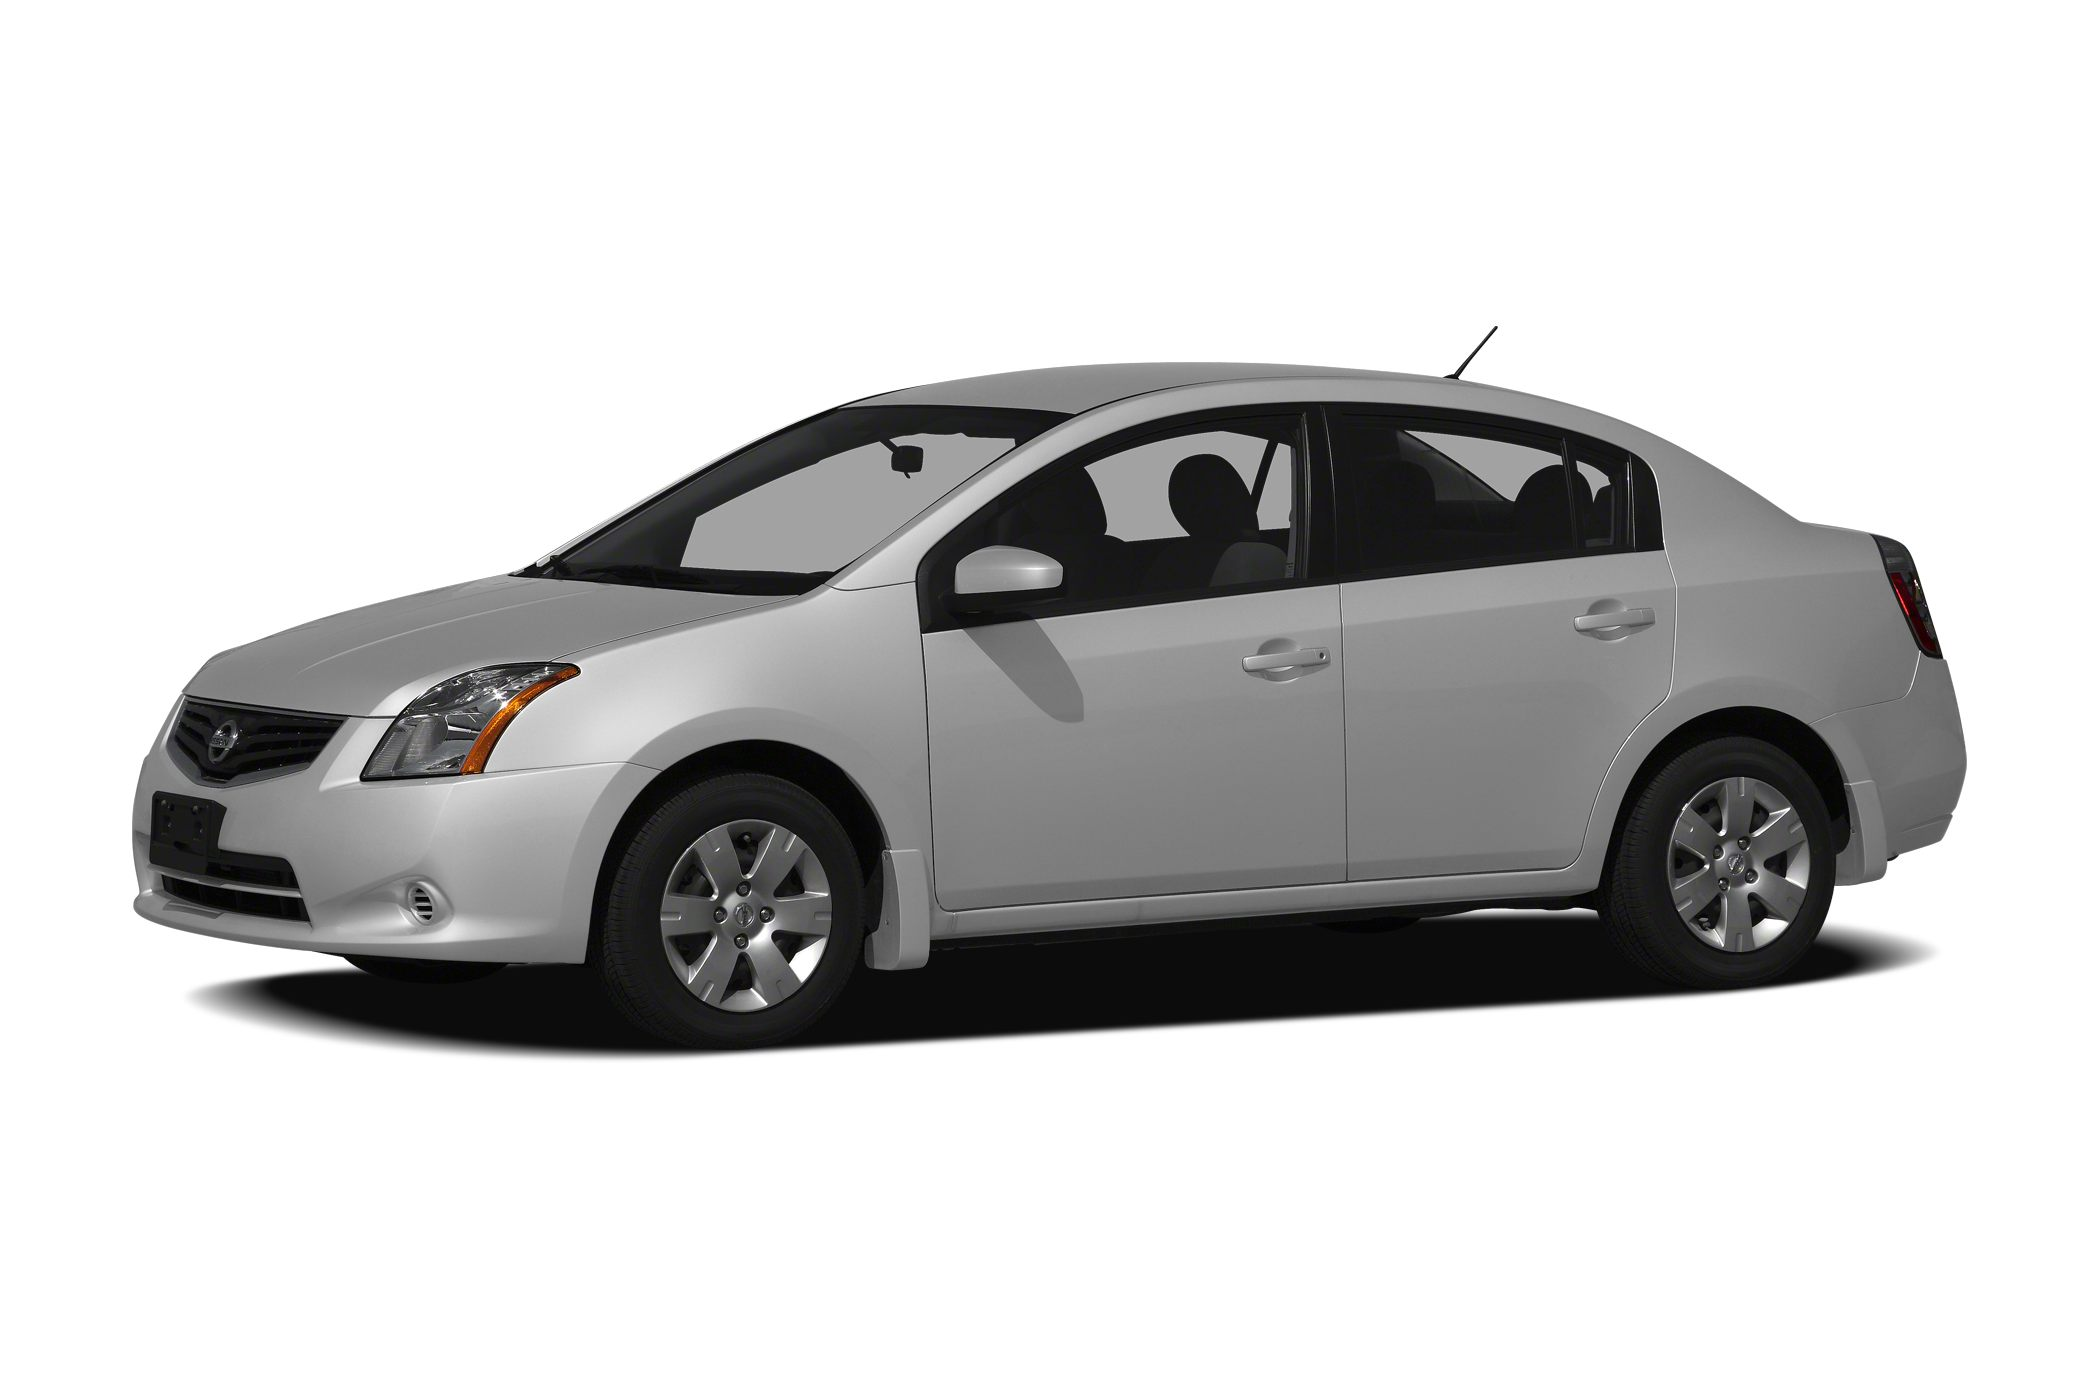 2012 Nissan Sentra 2.0 S Sedan for sale in Lafayette for $12,999 with 61,954 miles